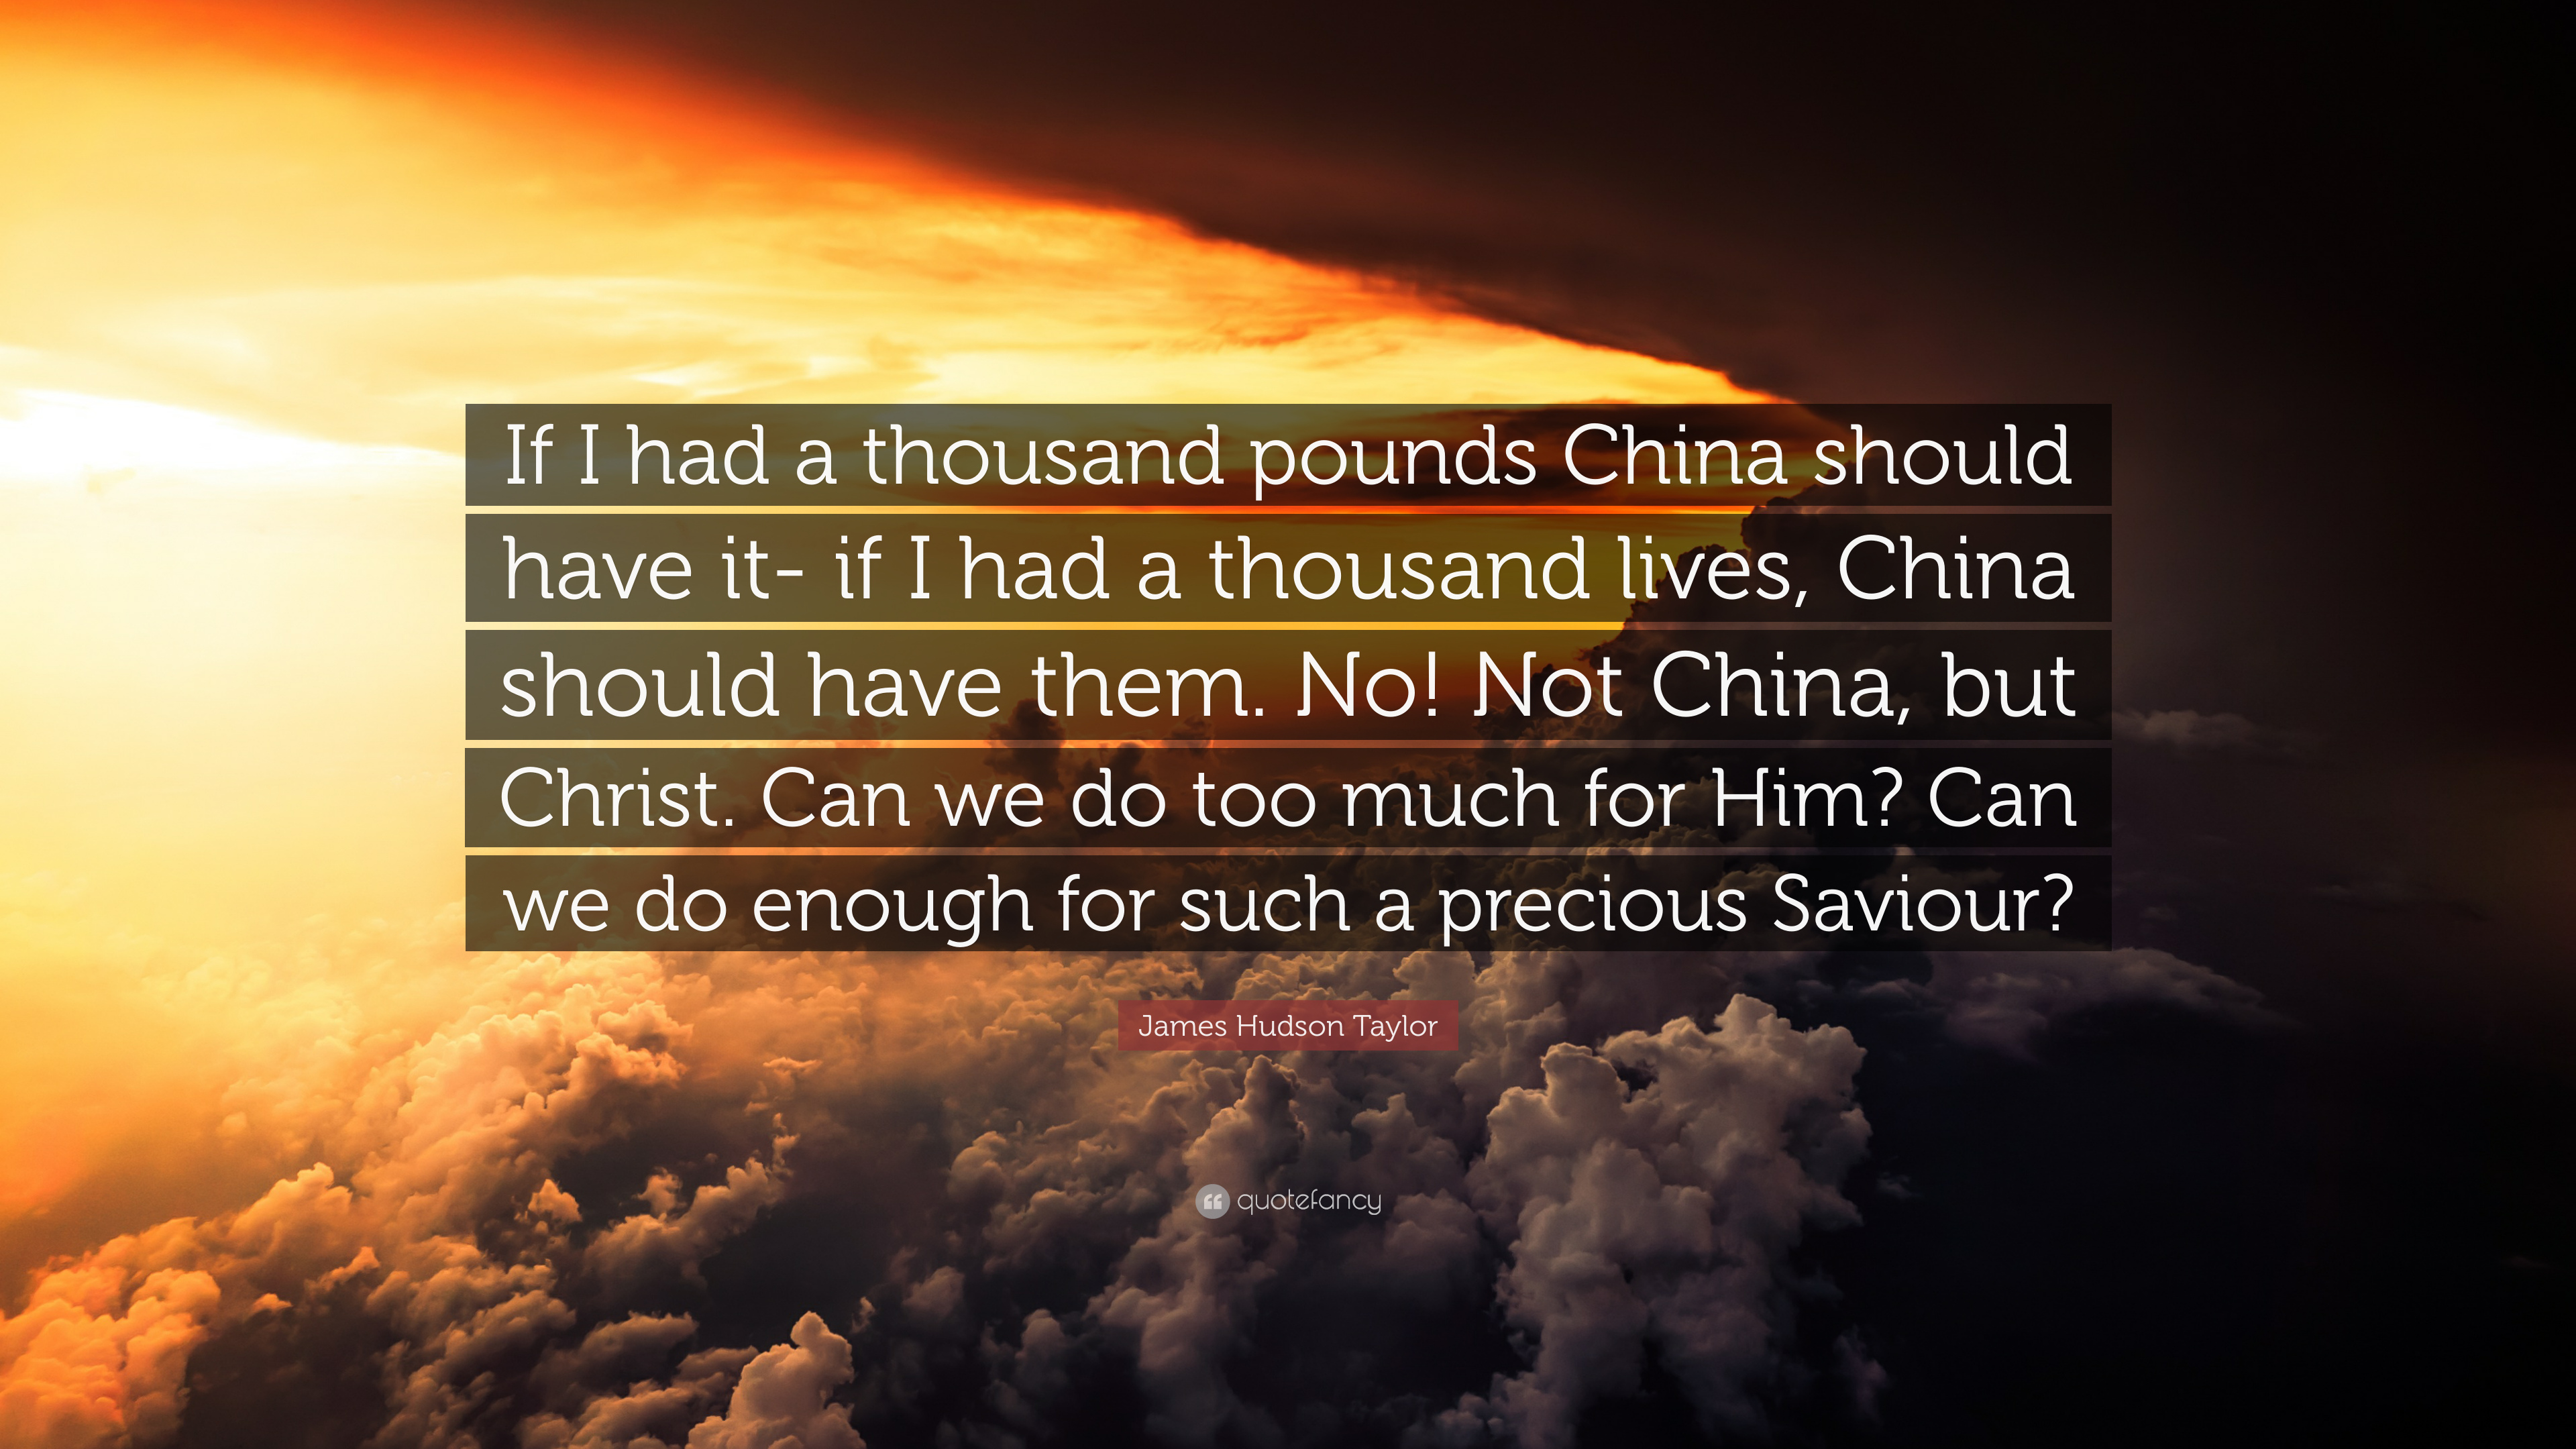 James Hudson Taylor Quote If I Had A Thousand Pounds China Should Have It